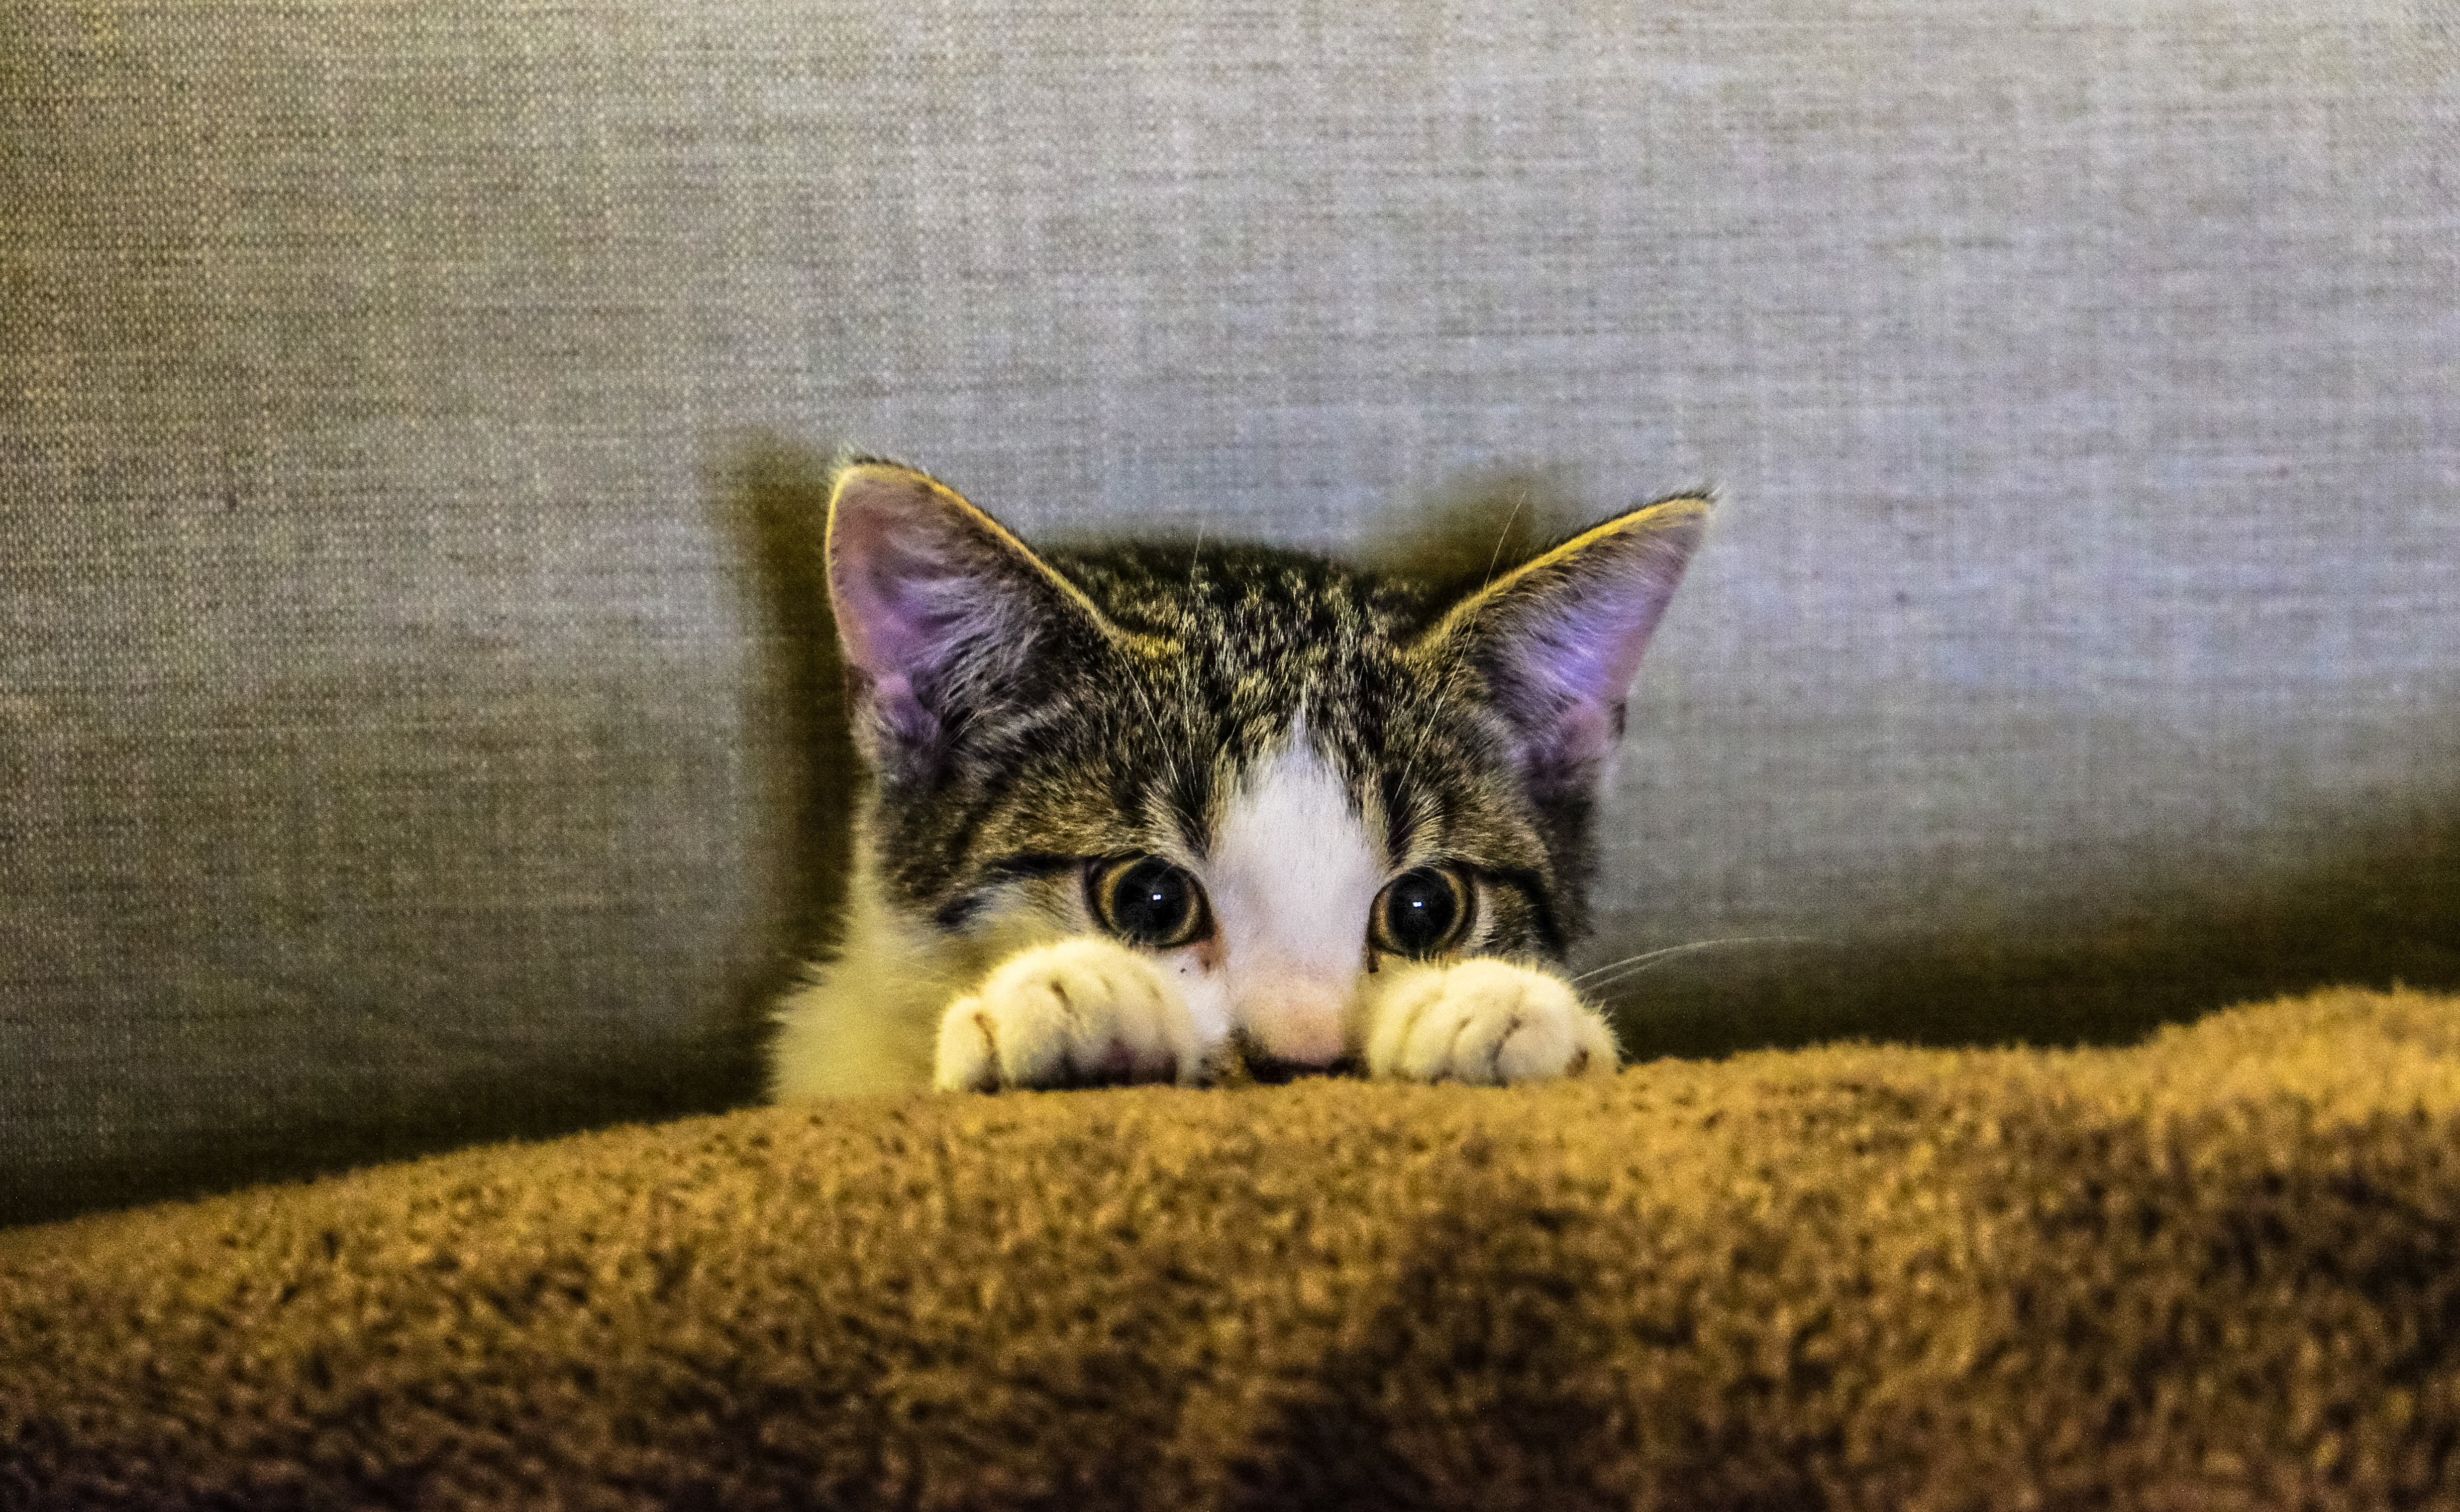 How to reduce flatulence in cats?